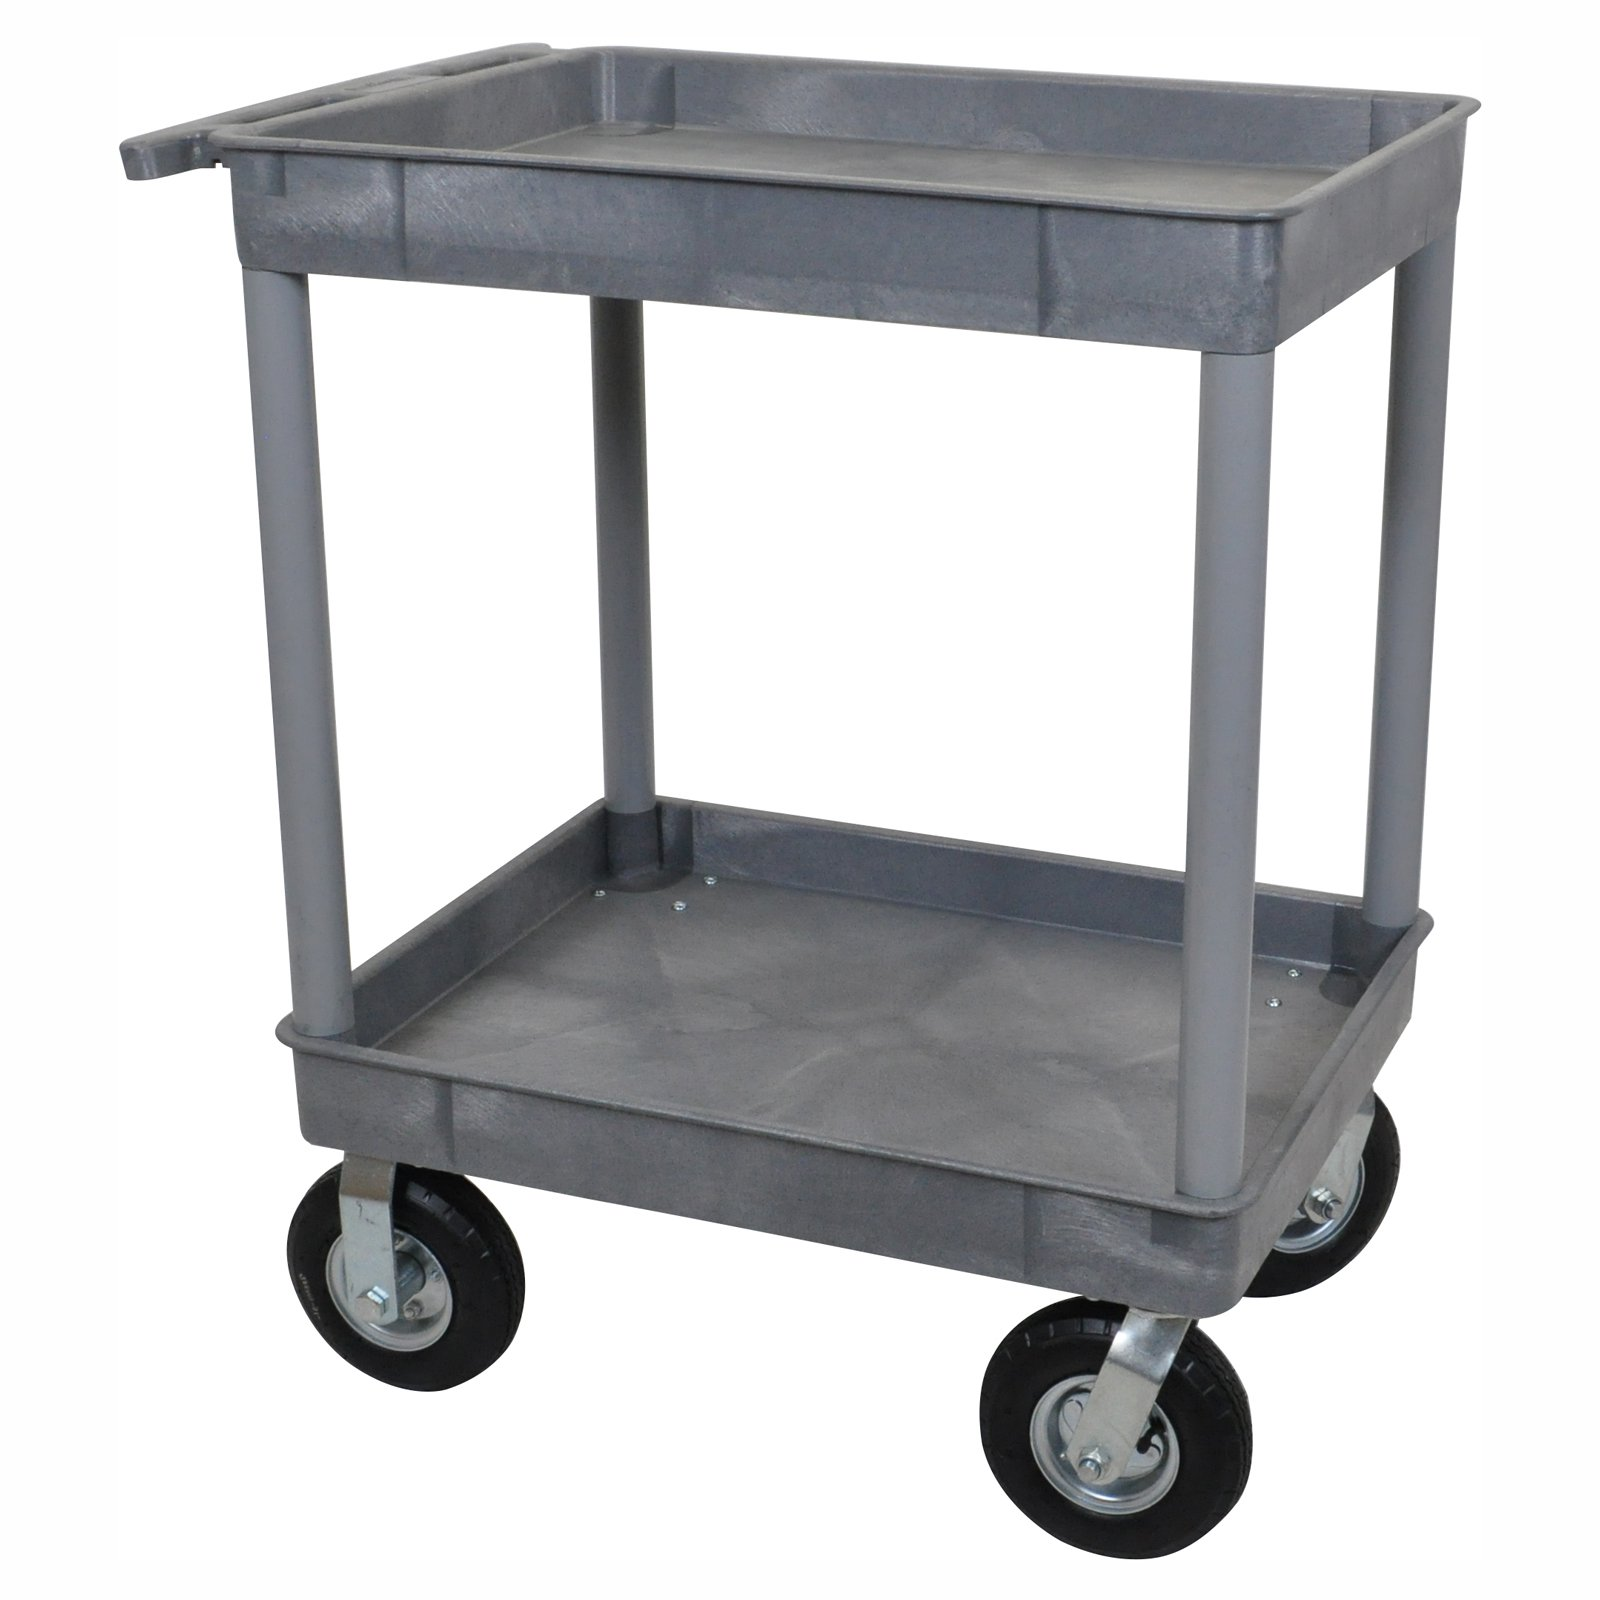 Luxor 24 x 32 2 in. Tub Cart with P8 Casters